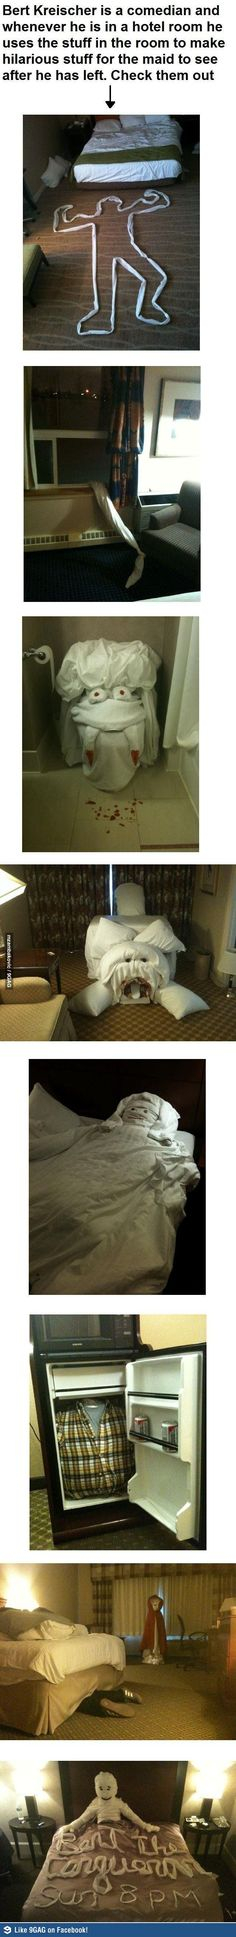 Hotel pranks... hahaha if this ever happened when i worked at a hotel i would have died laughing